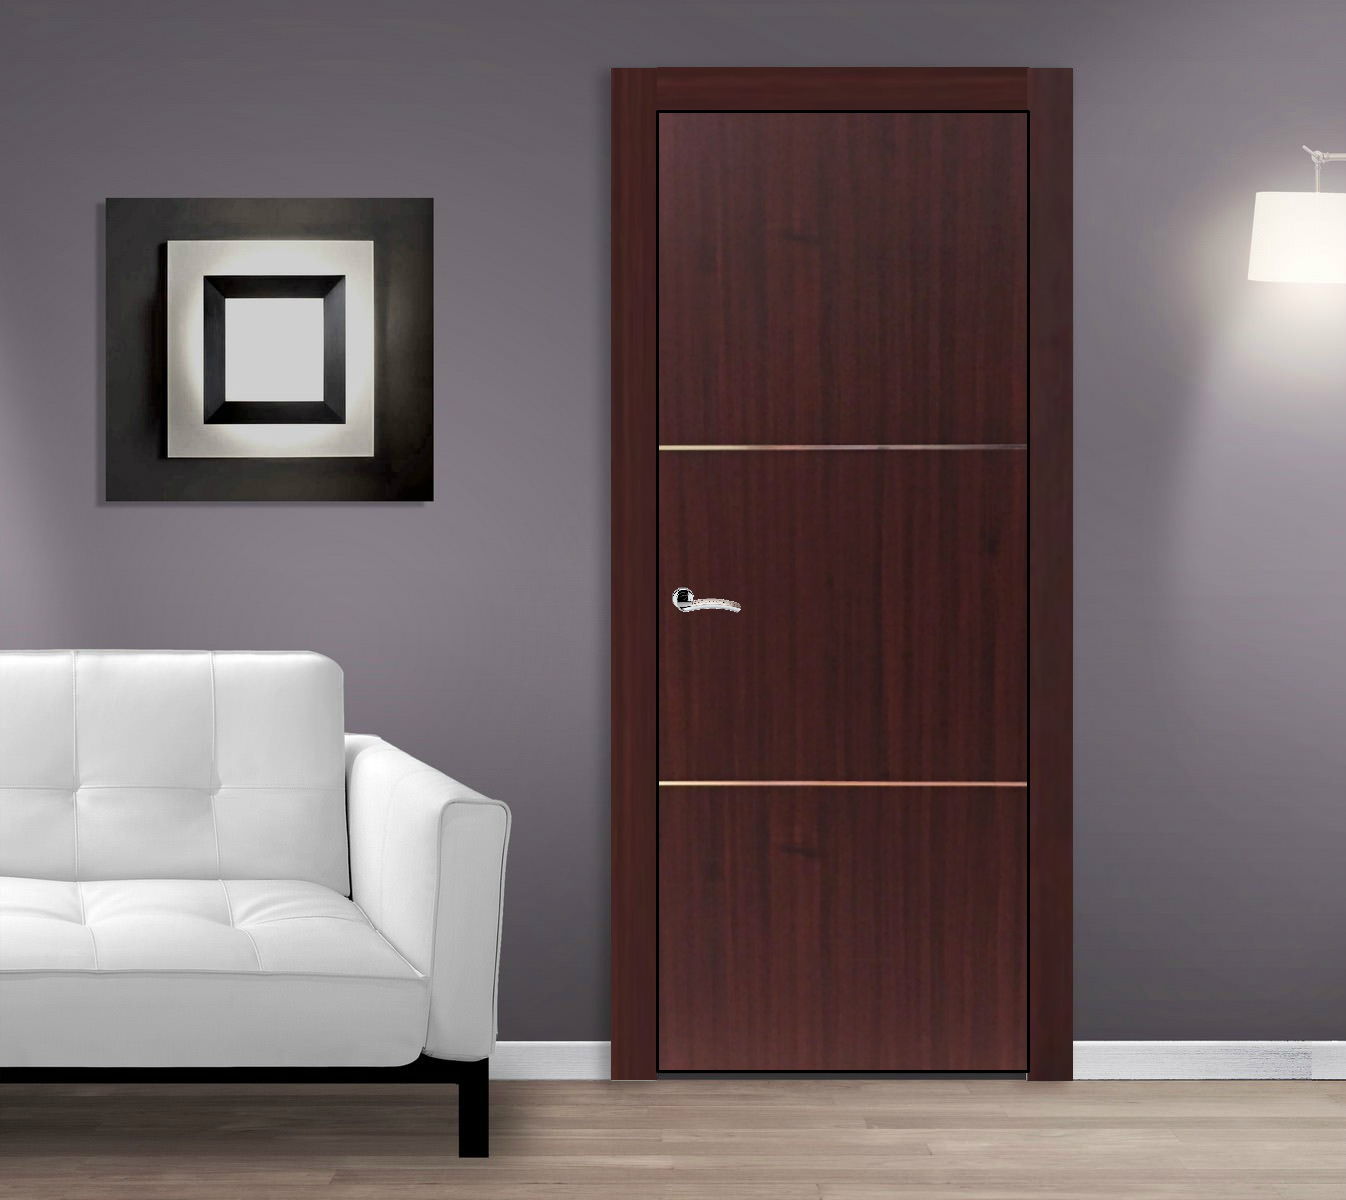 a panel contemporary the prefinished popular designs for ideal doors ideas installation are exterior house modern internal any will in uk fit interior